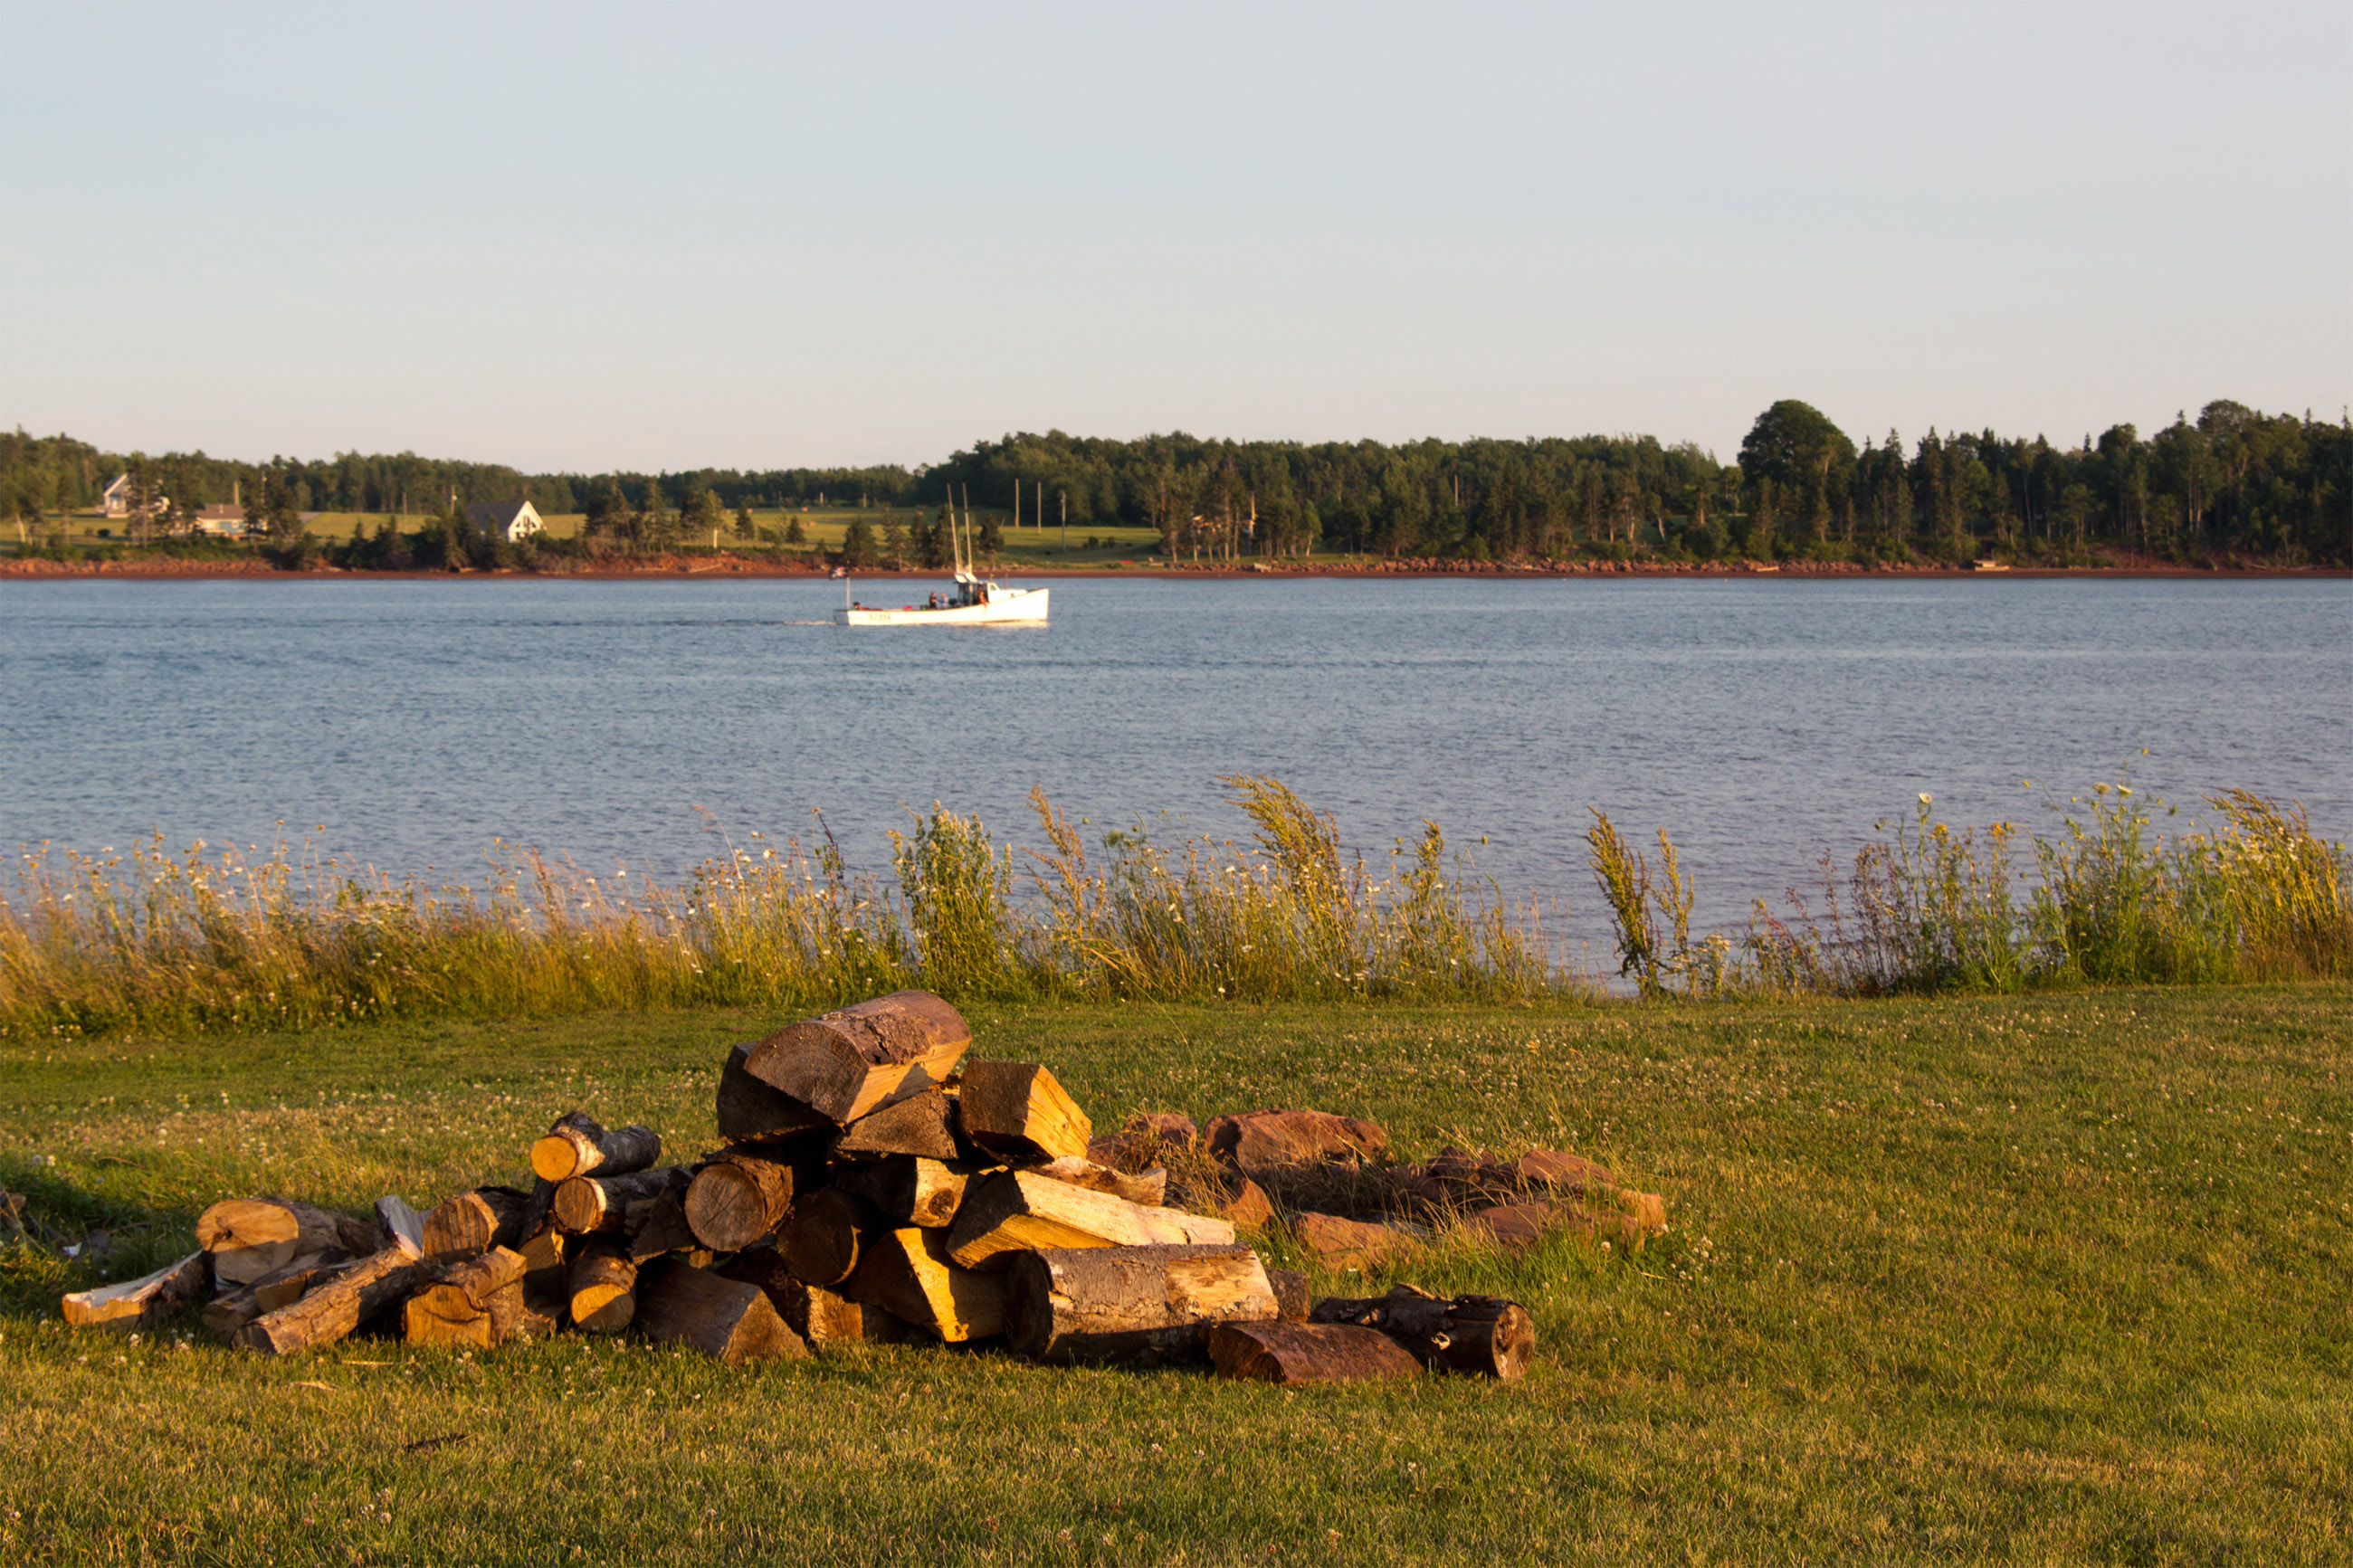 Wood, Boat, Landscape, Water, Vacation, HQ Photo